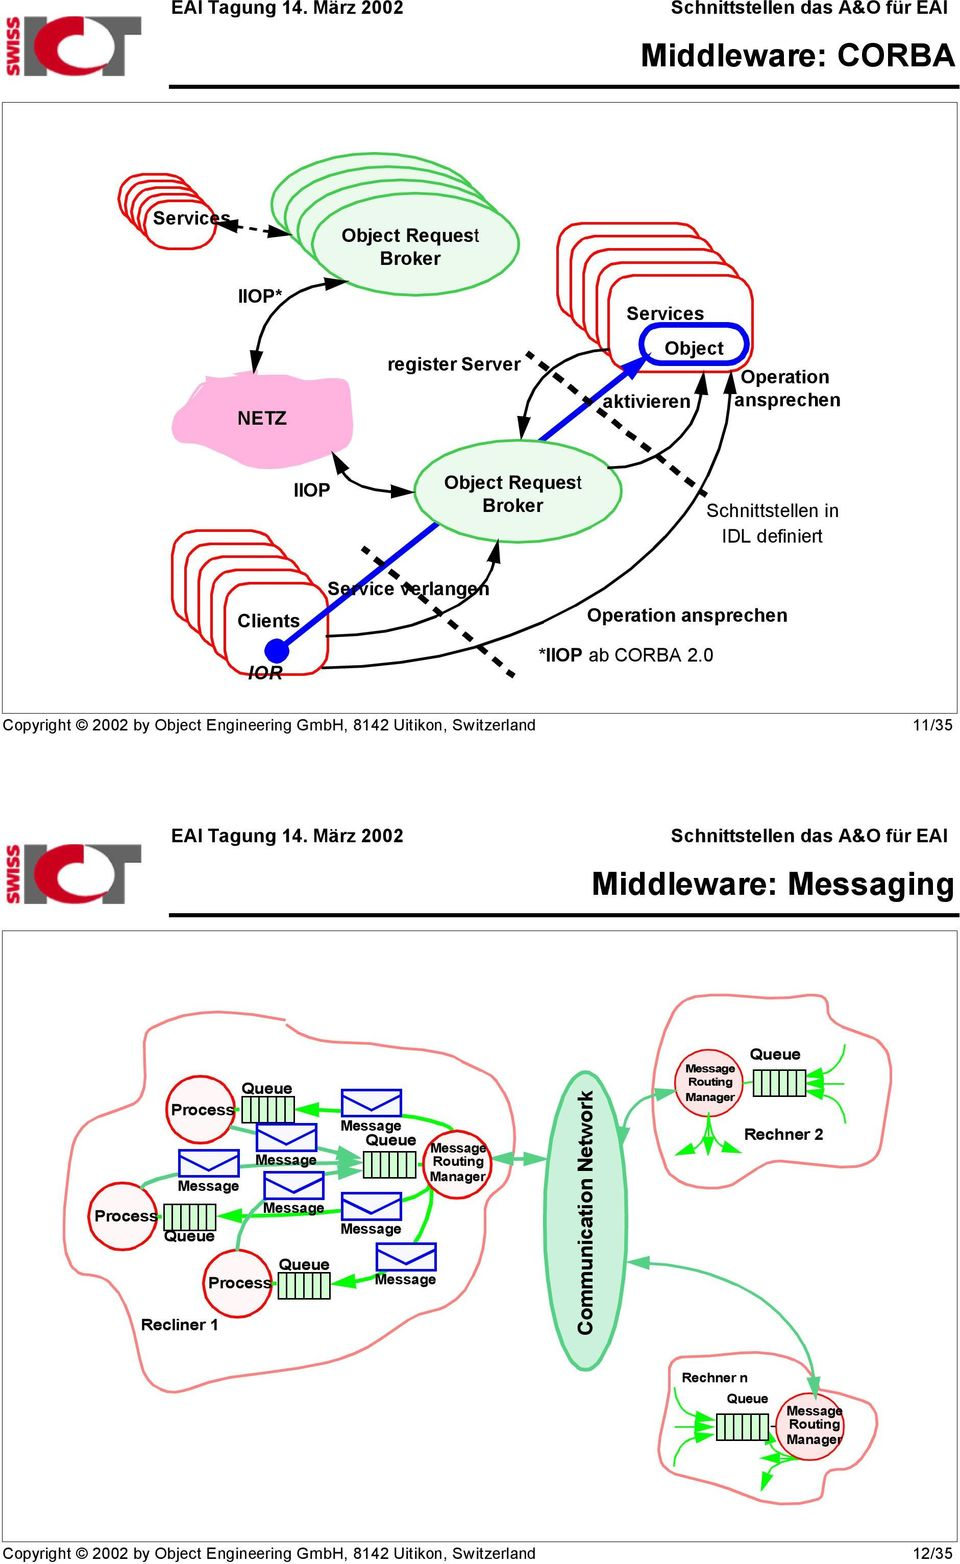 0 Copyright 2002 by Object Engineering GmbH, 8142 Uitikon, Switzerland 11/35 Middleware: Messaging Process Queue Queue Process Recliner 1